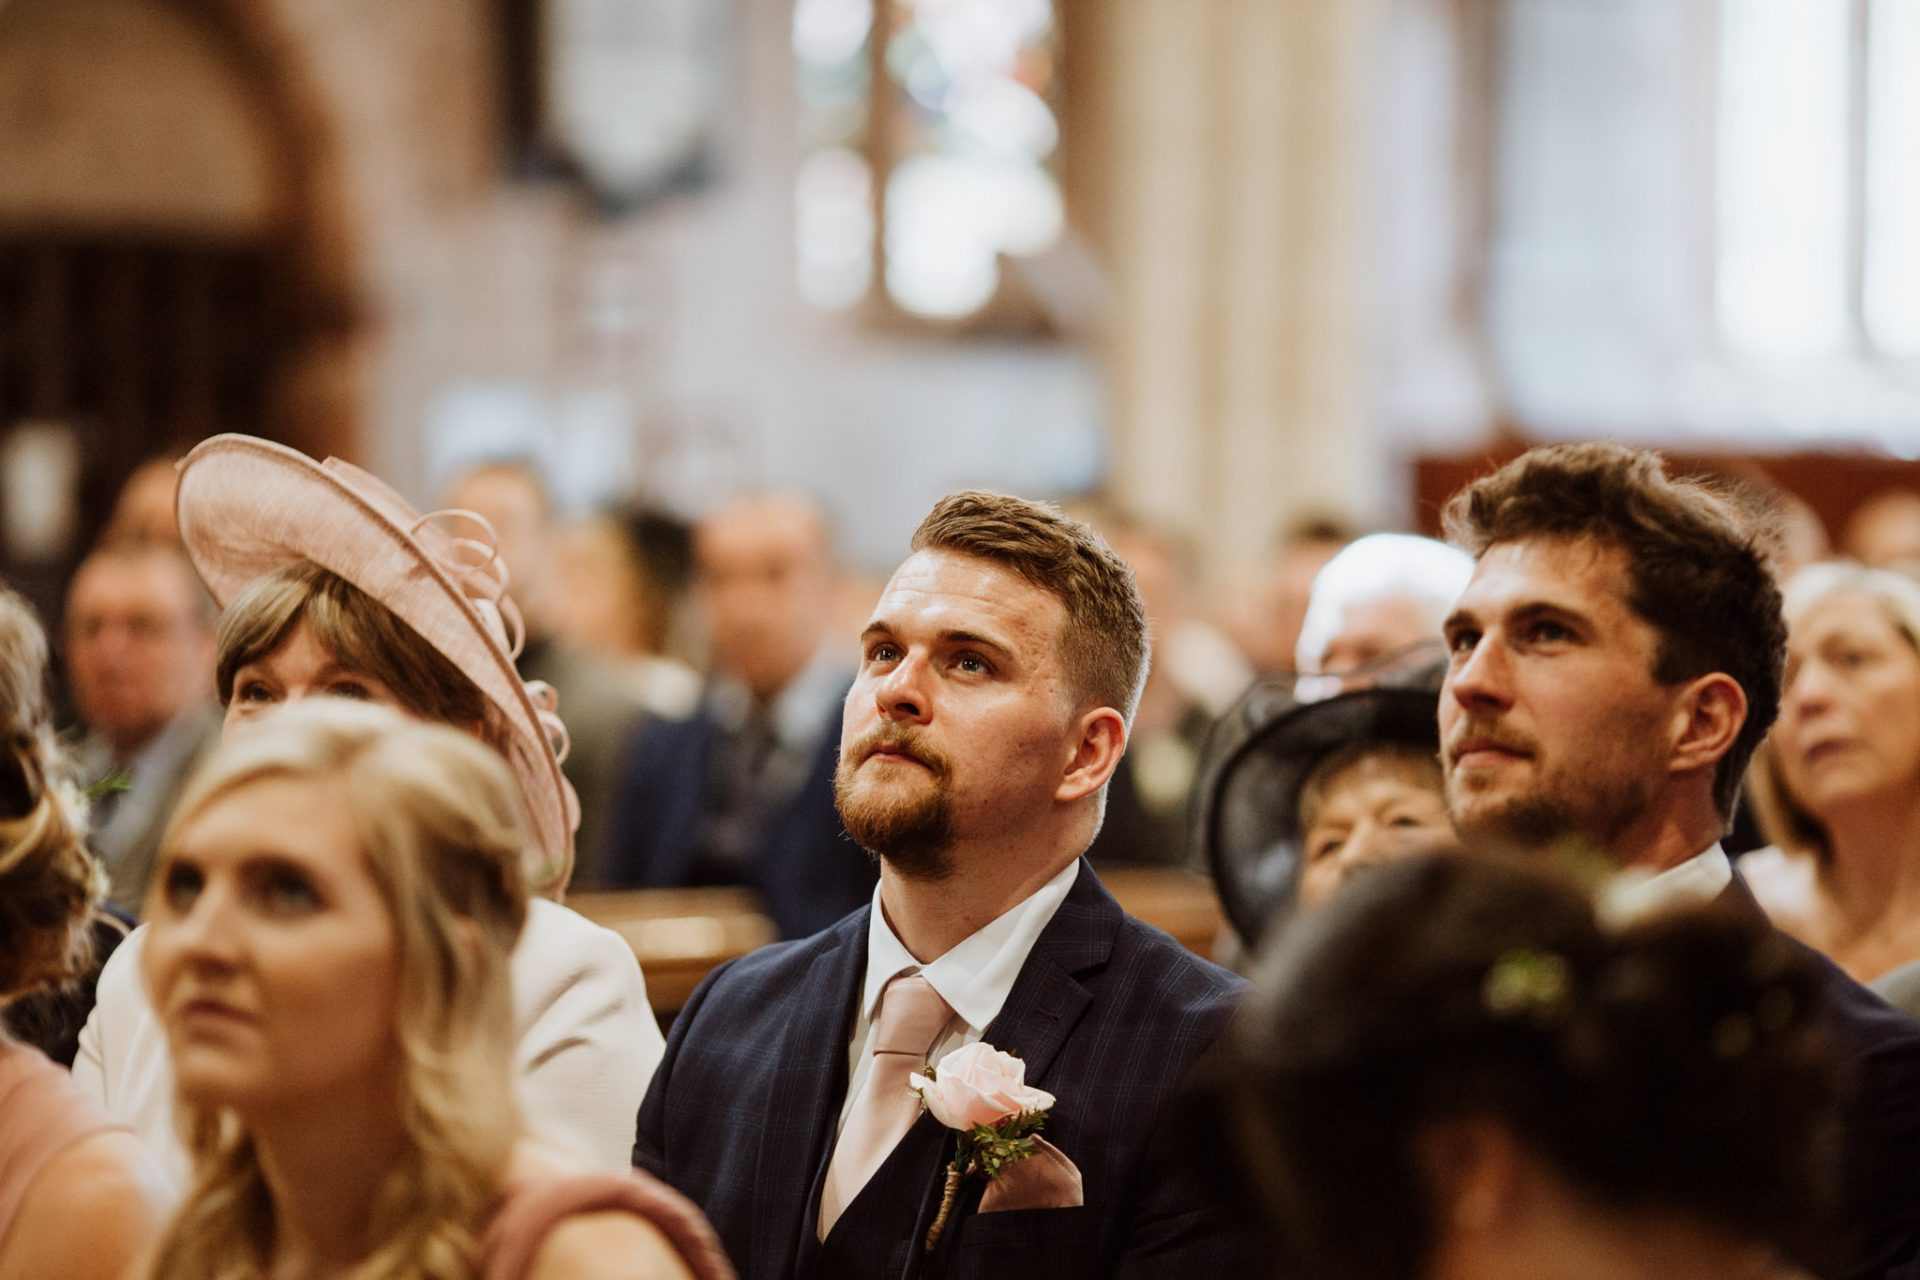 teary eyed guest in church